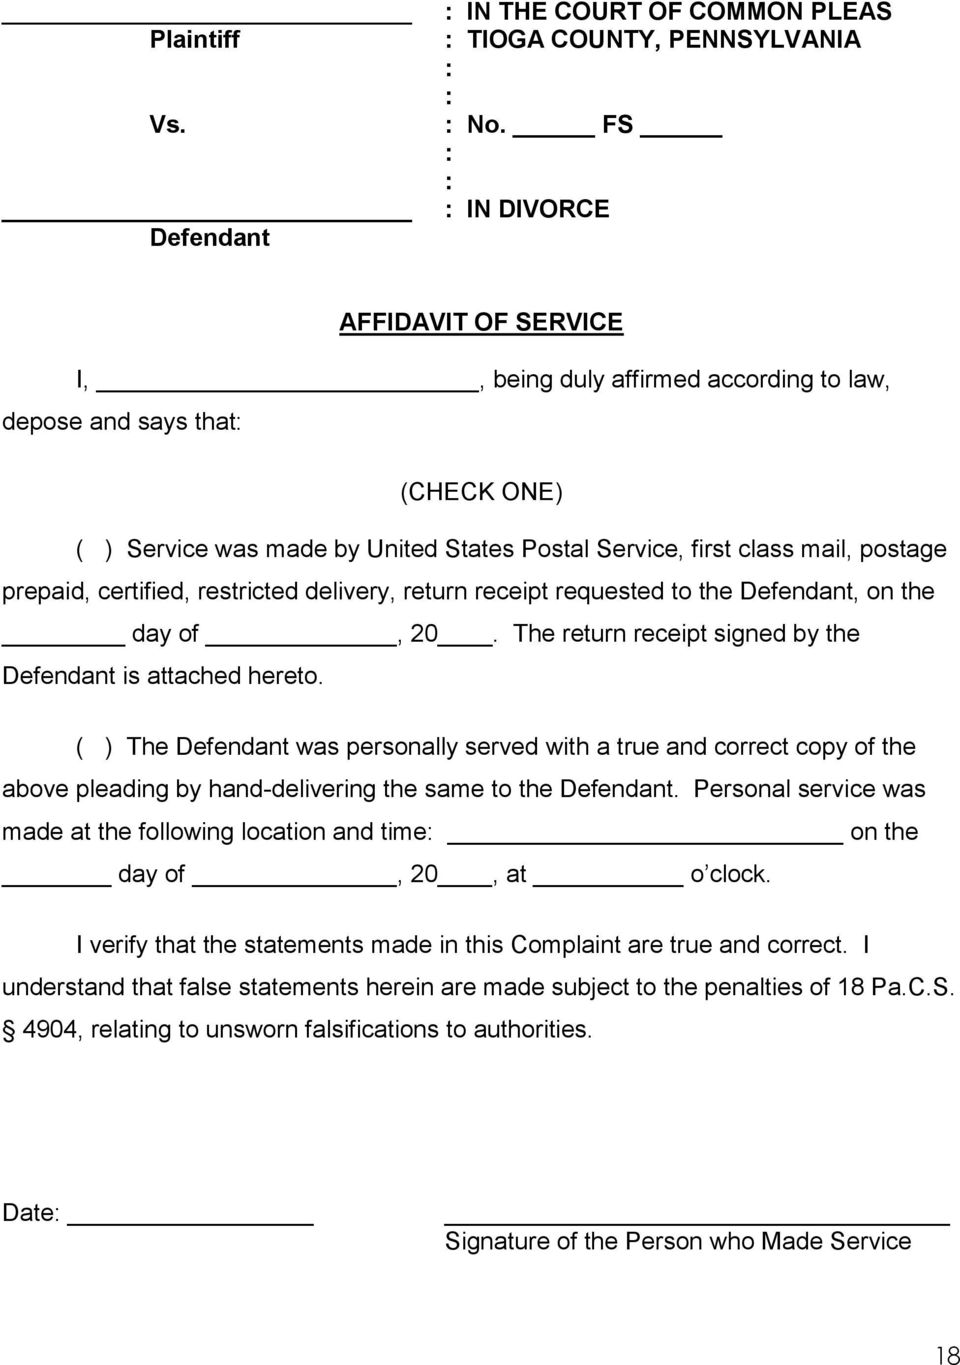 certified, restricted delivery, return receipt requested to the Defendant, on the day of, 20. The return receipt signed by the Defendant is attached hereto.